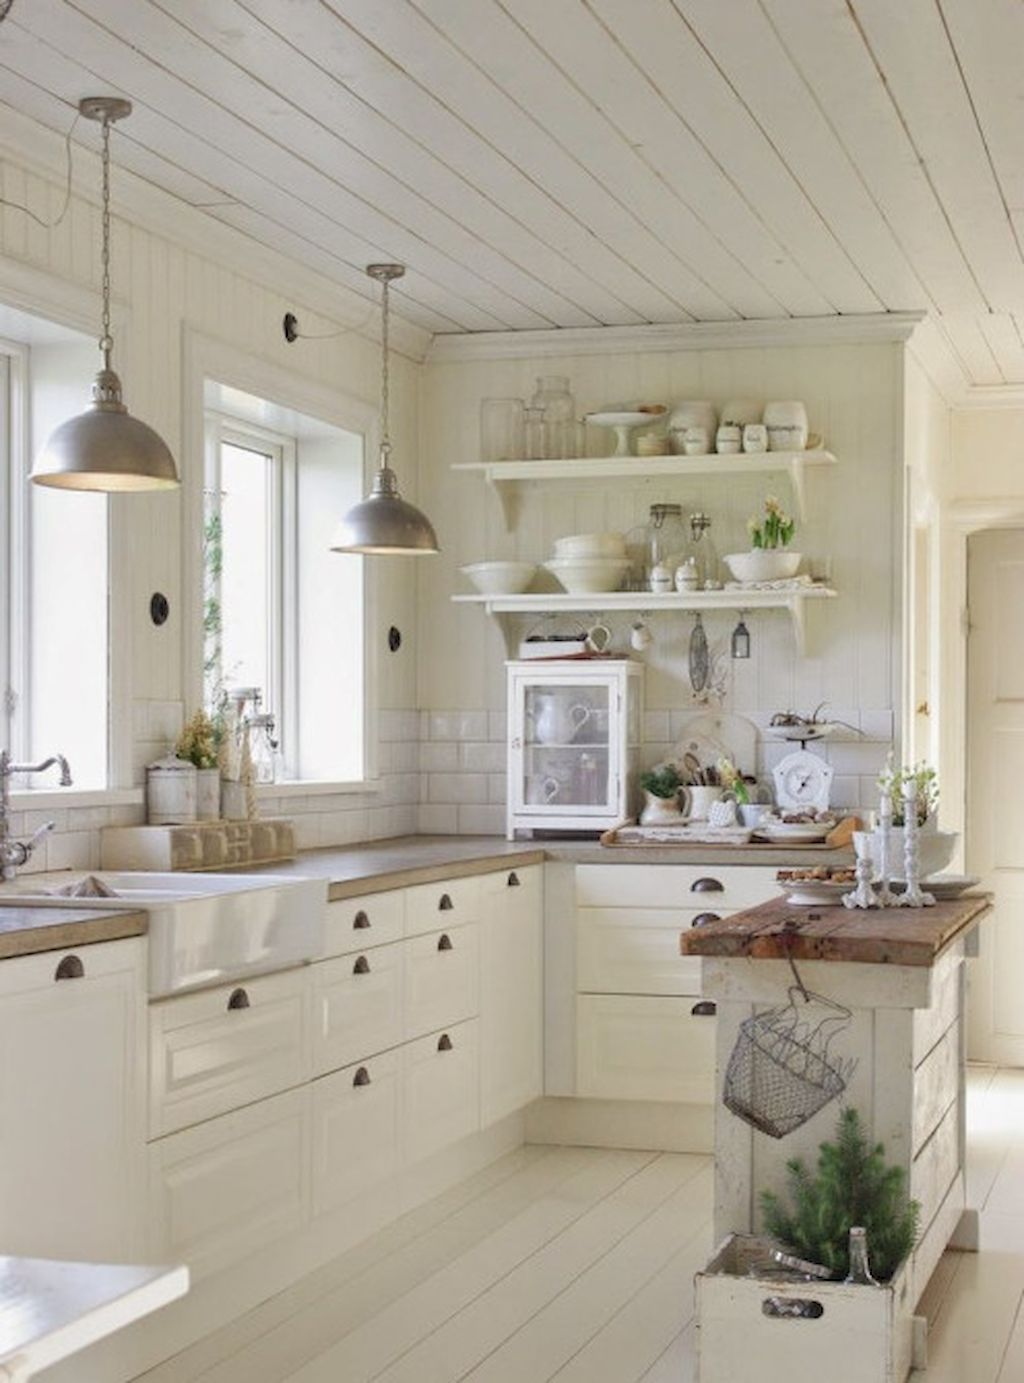 90 Rustic Kitchen Cabinets Farmhouse Style Ideas 75  Rustic Delectable Farmhouse Kitchen Design Inspiration